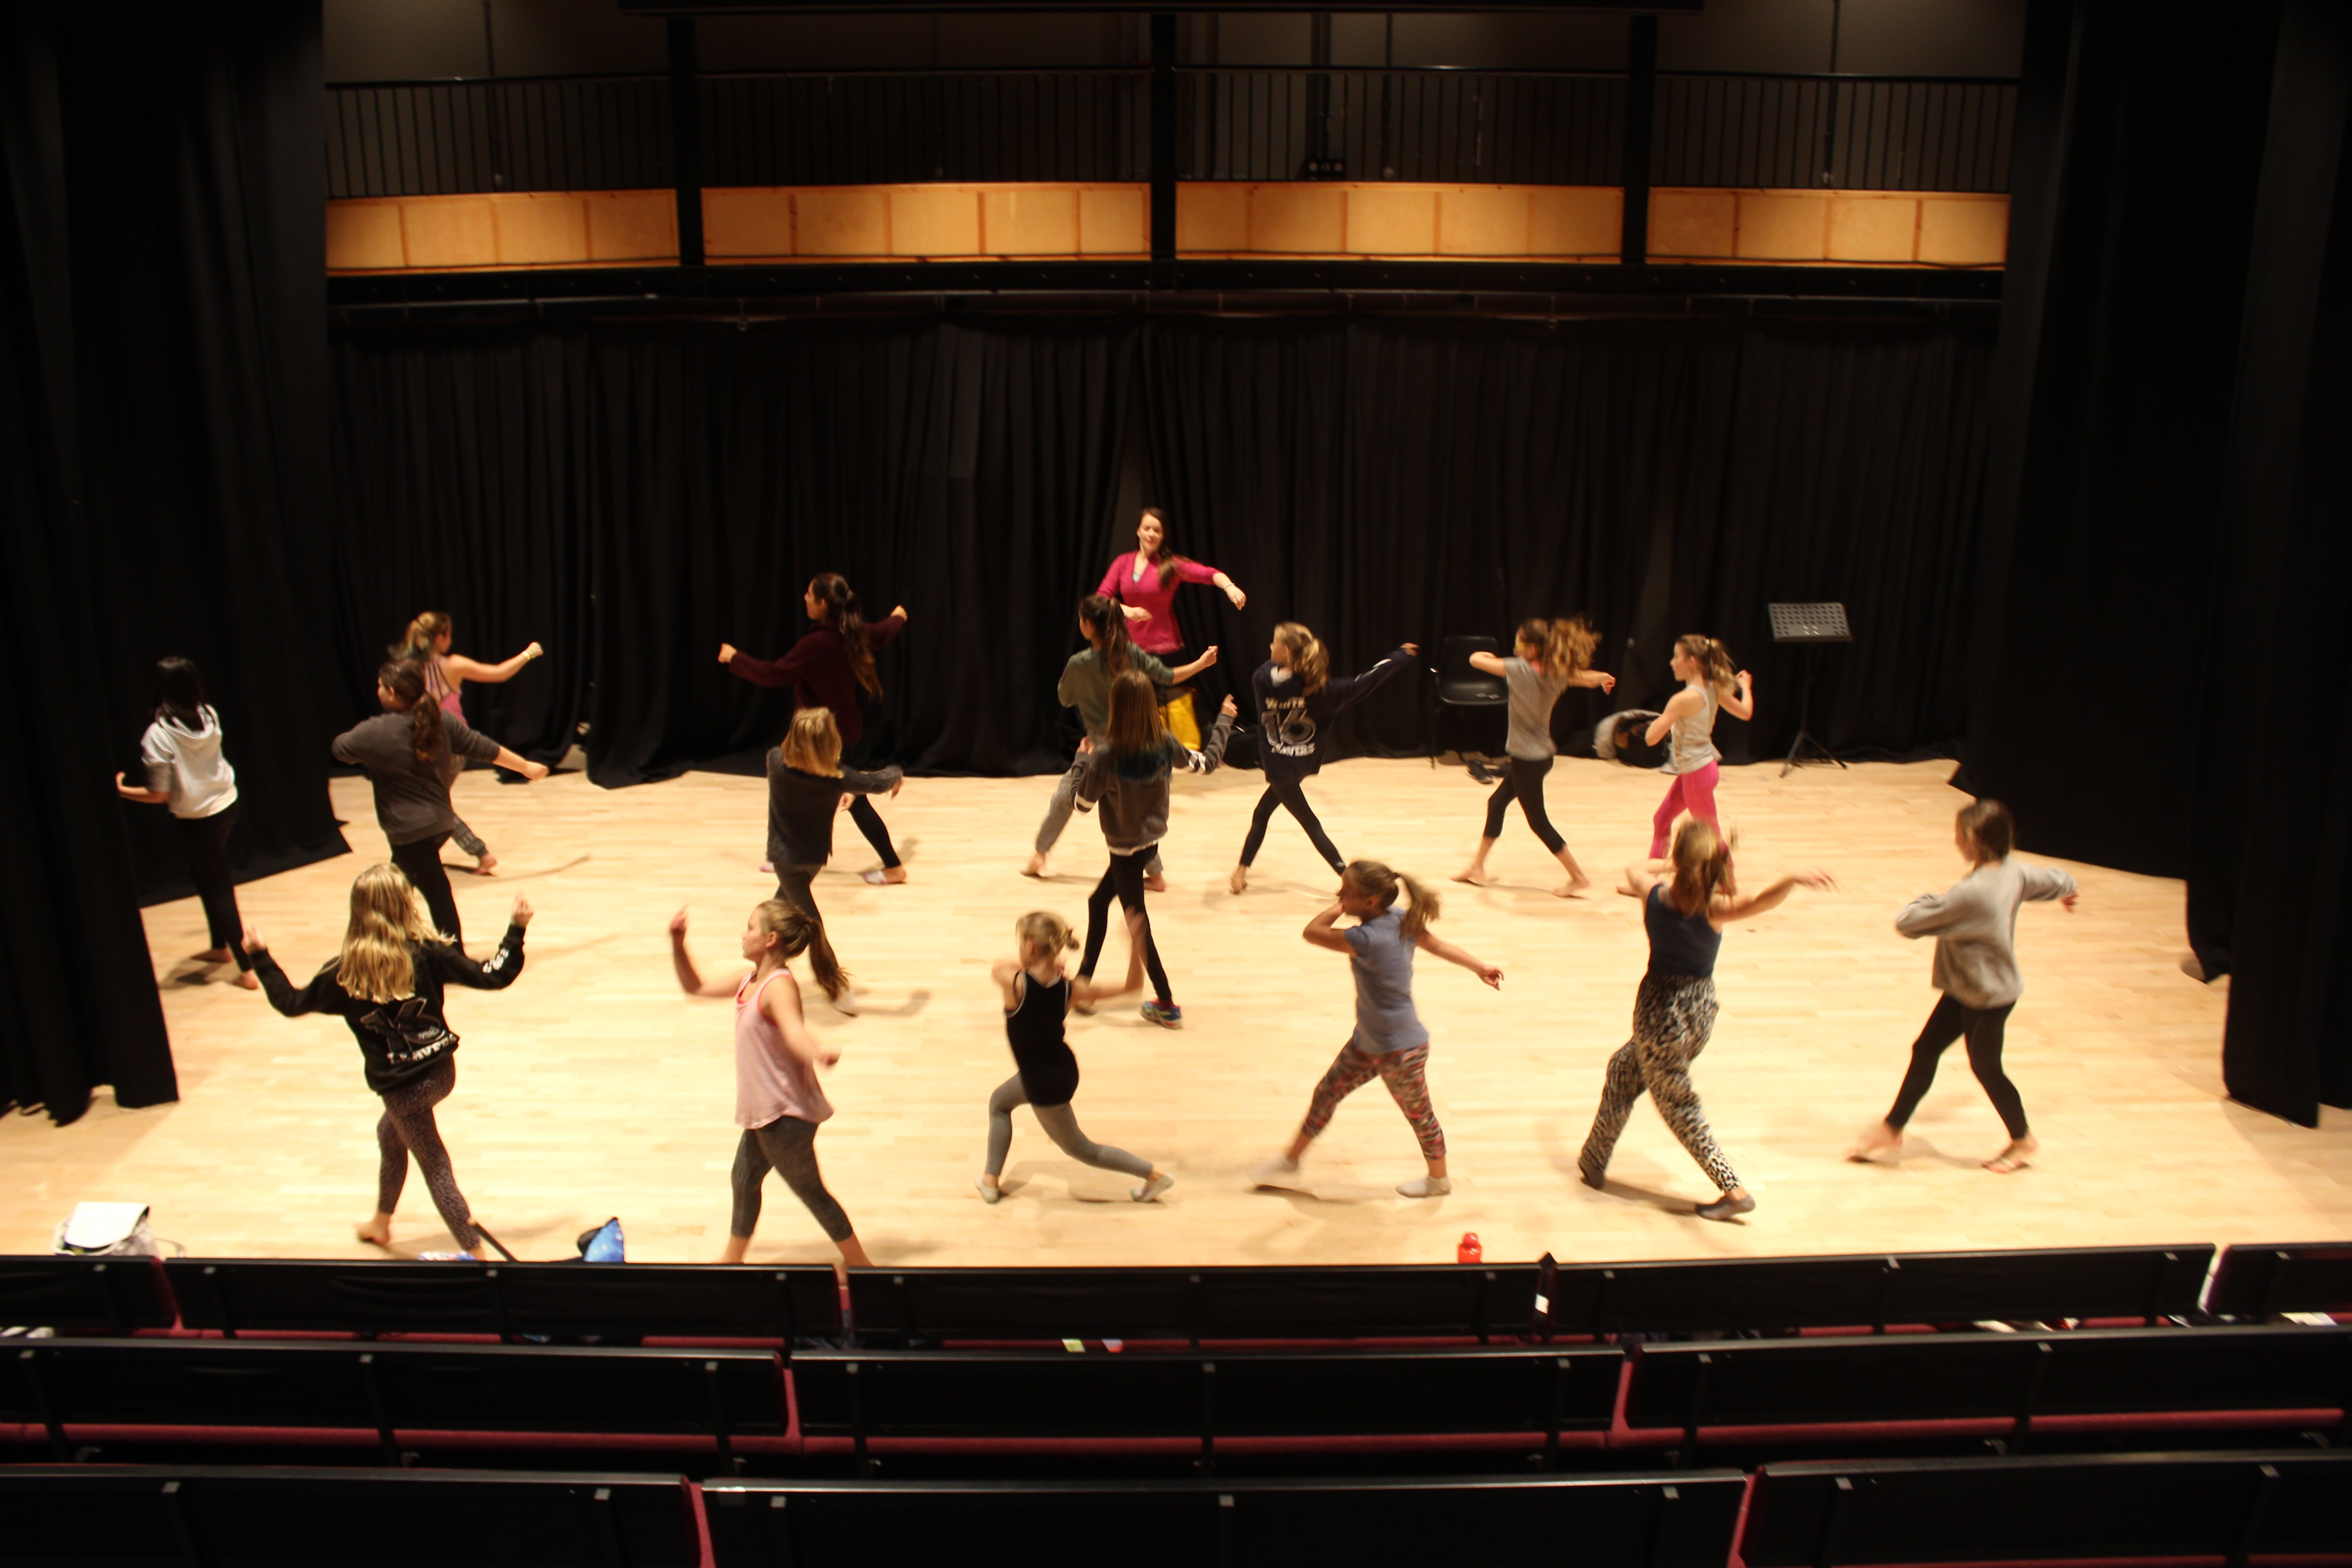 Rehearsing in the theatre